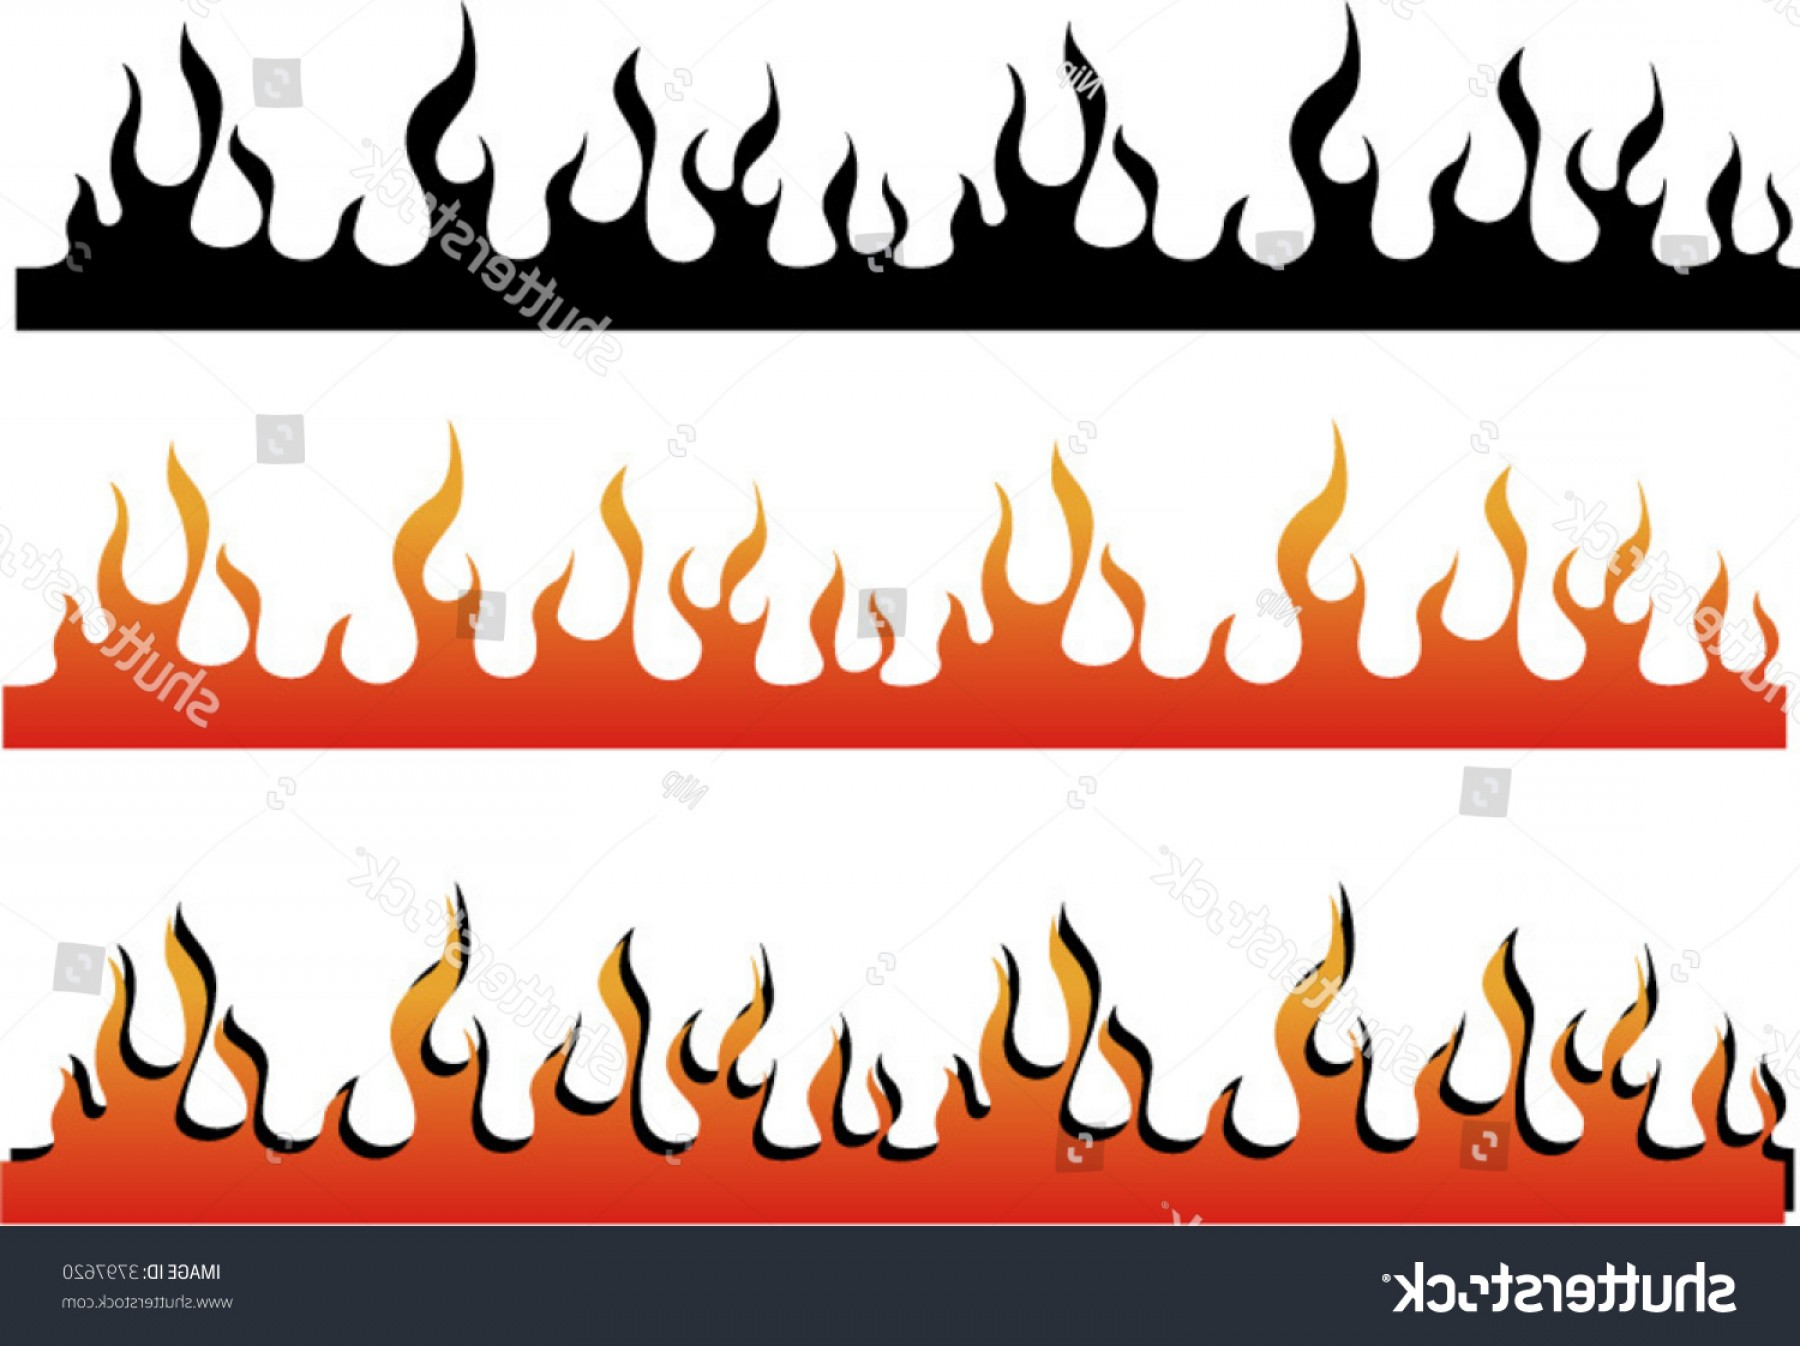 Harley-Davidson Flame Vector Silhouette: Flame Border Can Be Used Illustrator